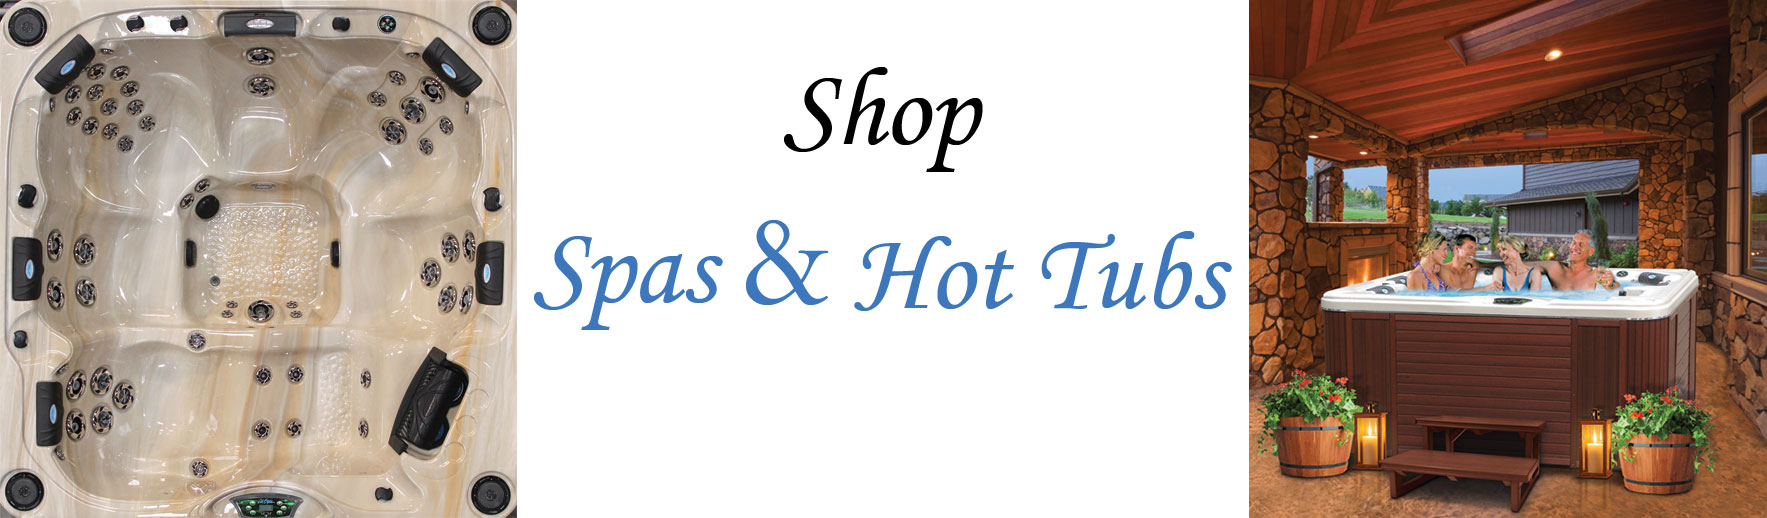 Shop - spas and hot tubs